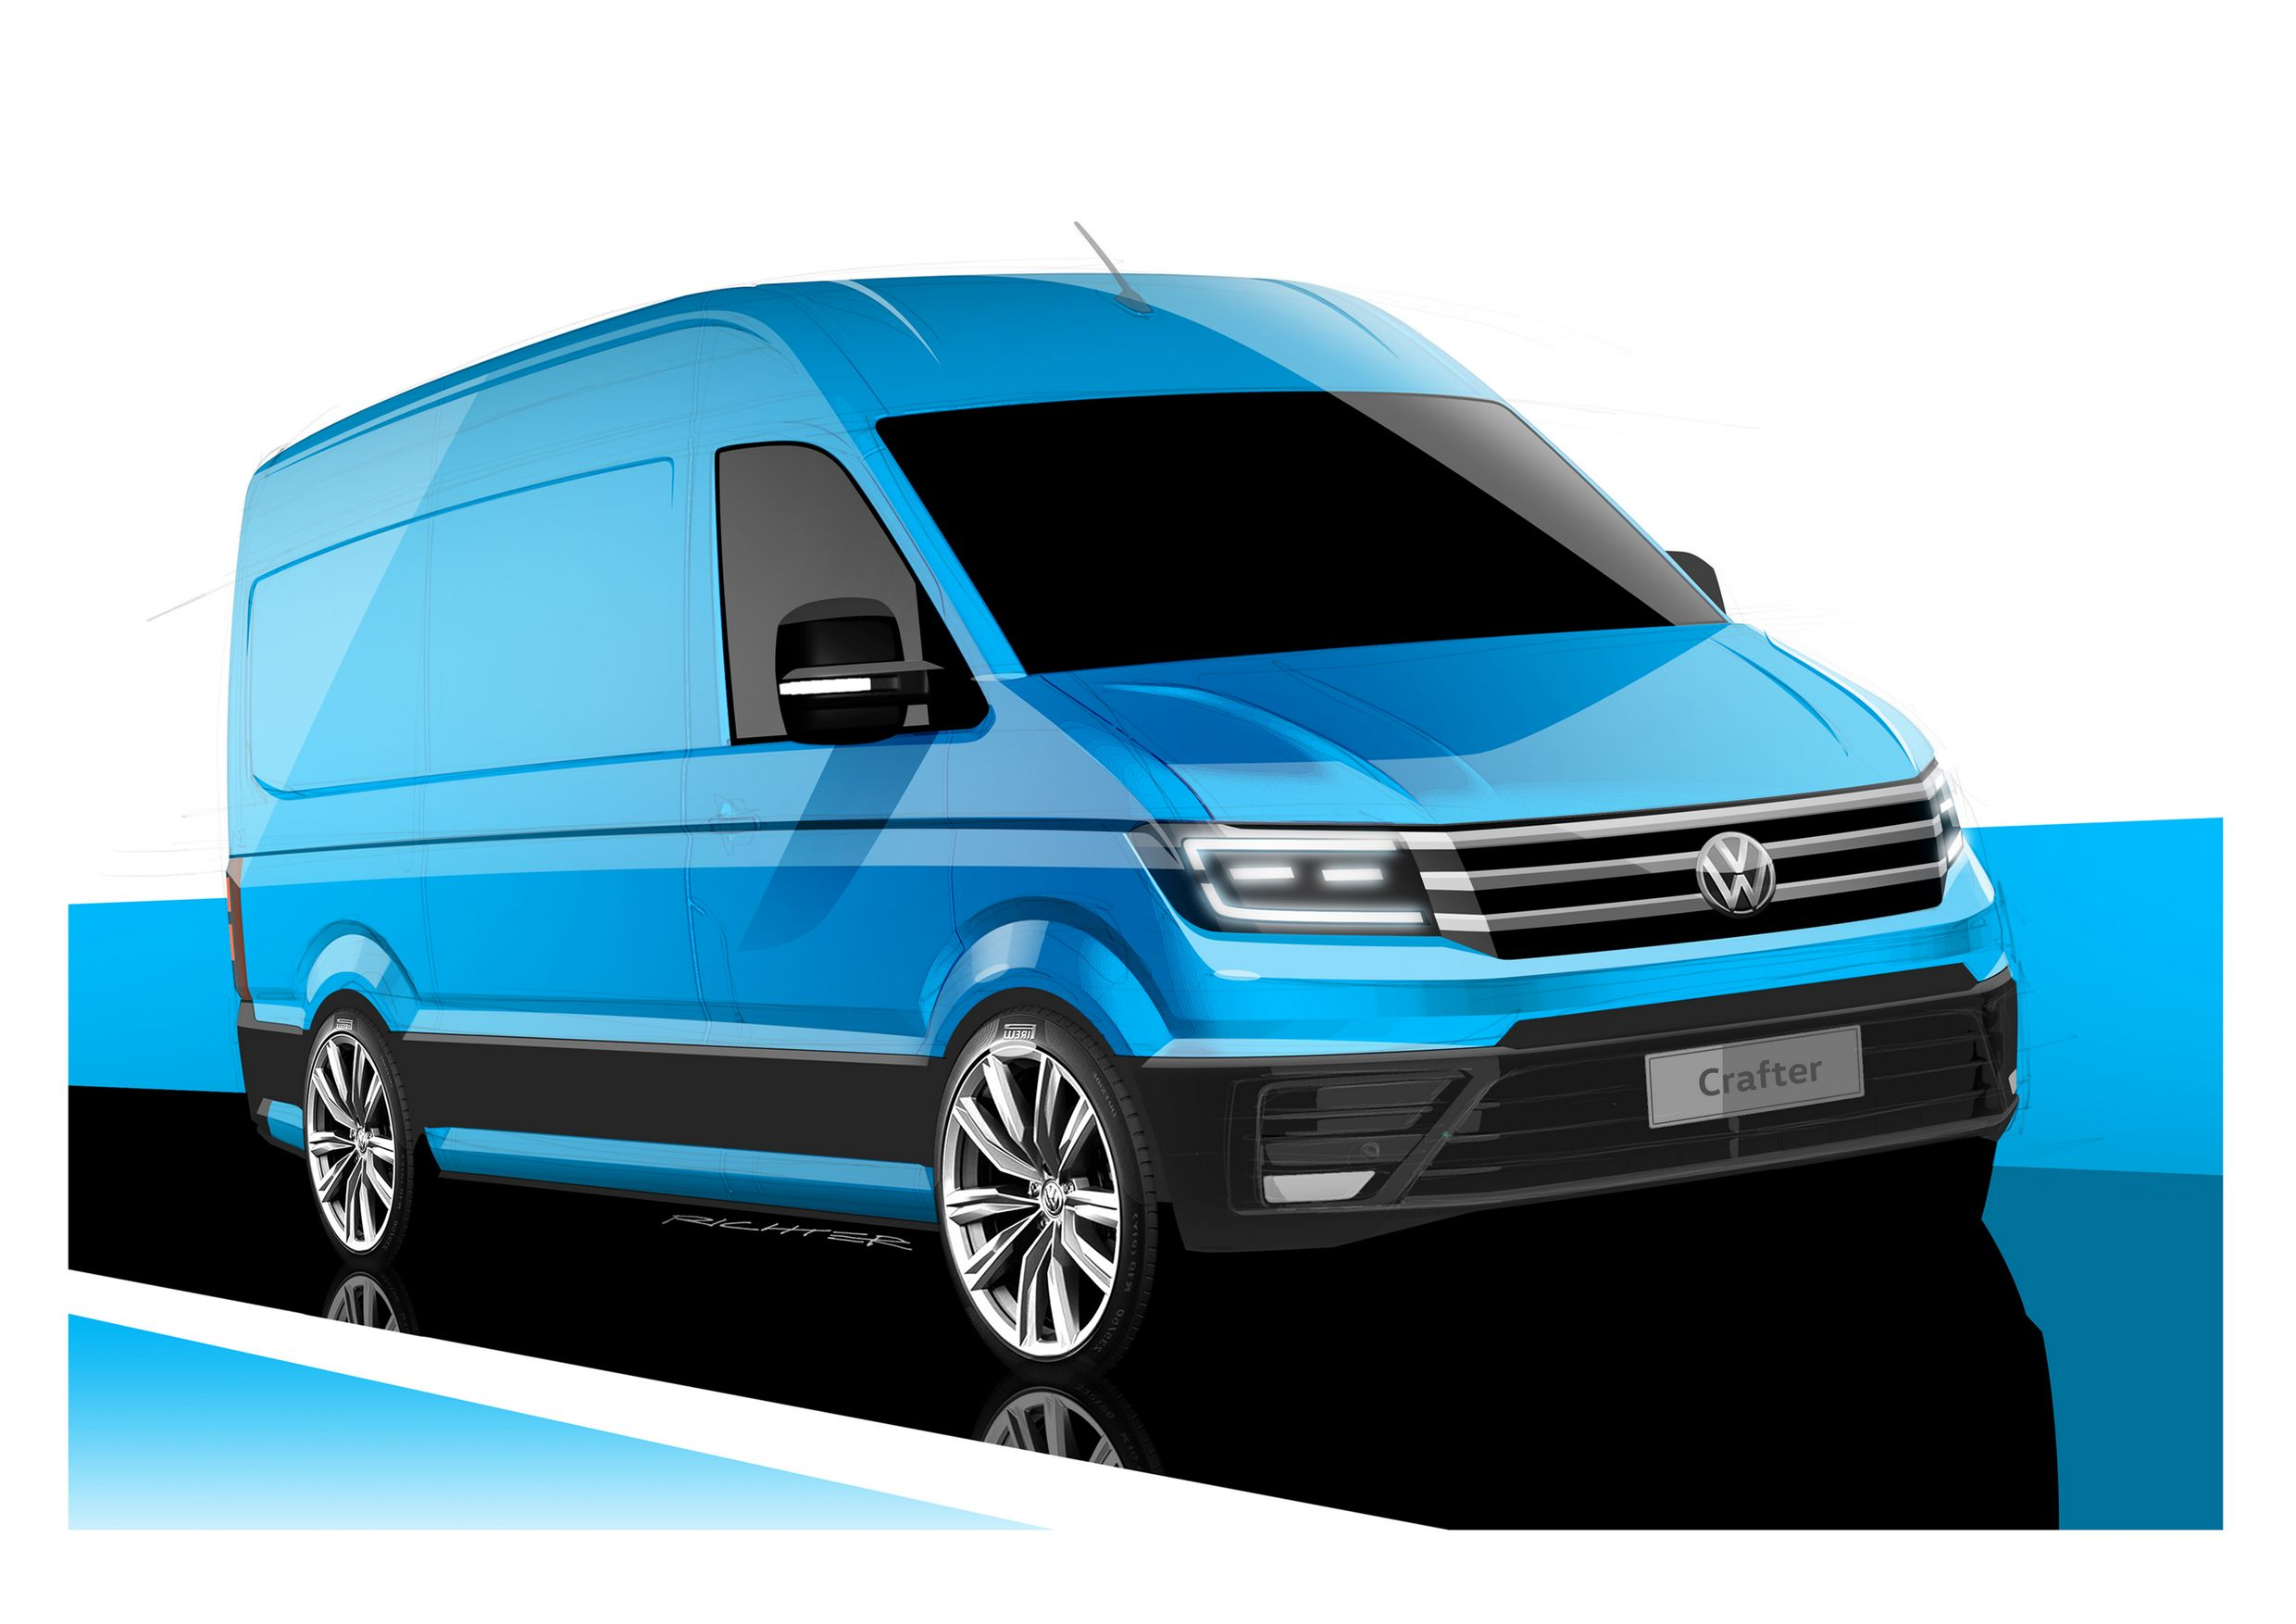 2017 Volkswagen Crafter Teased, Slated to Debut at IAA 2016